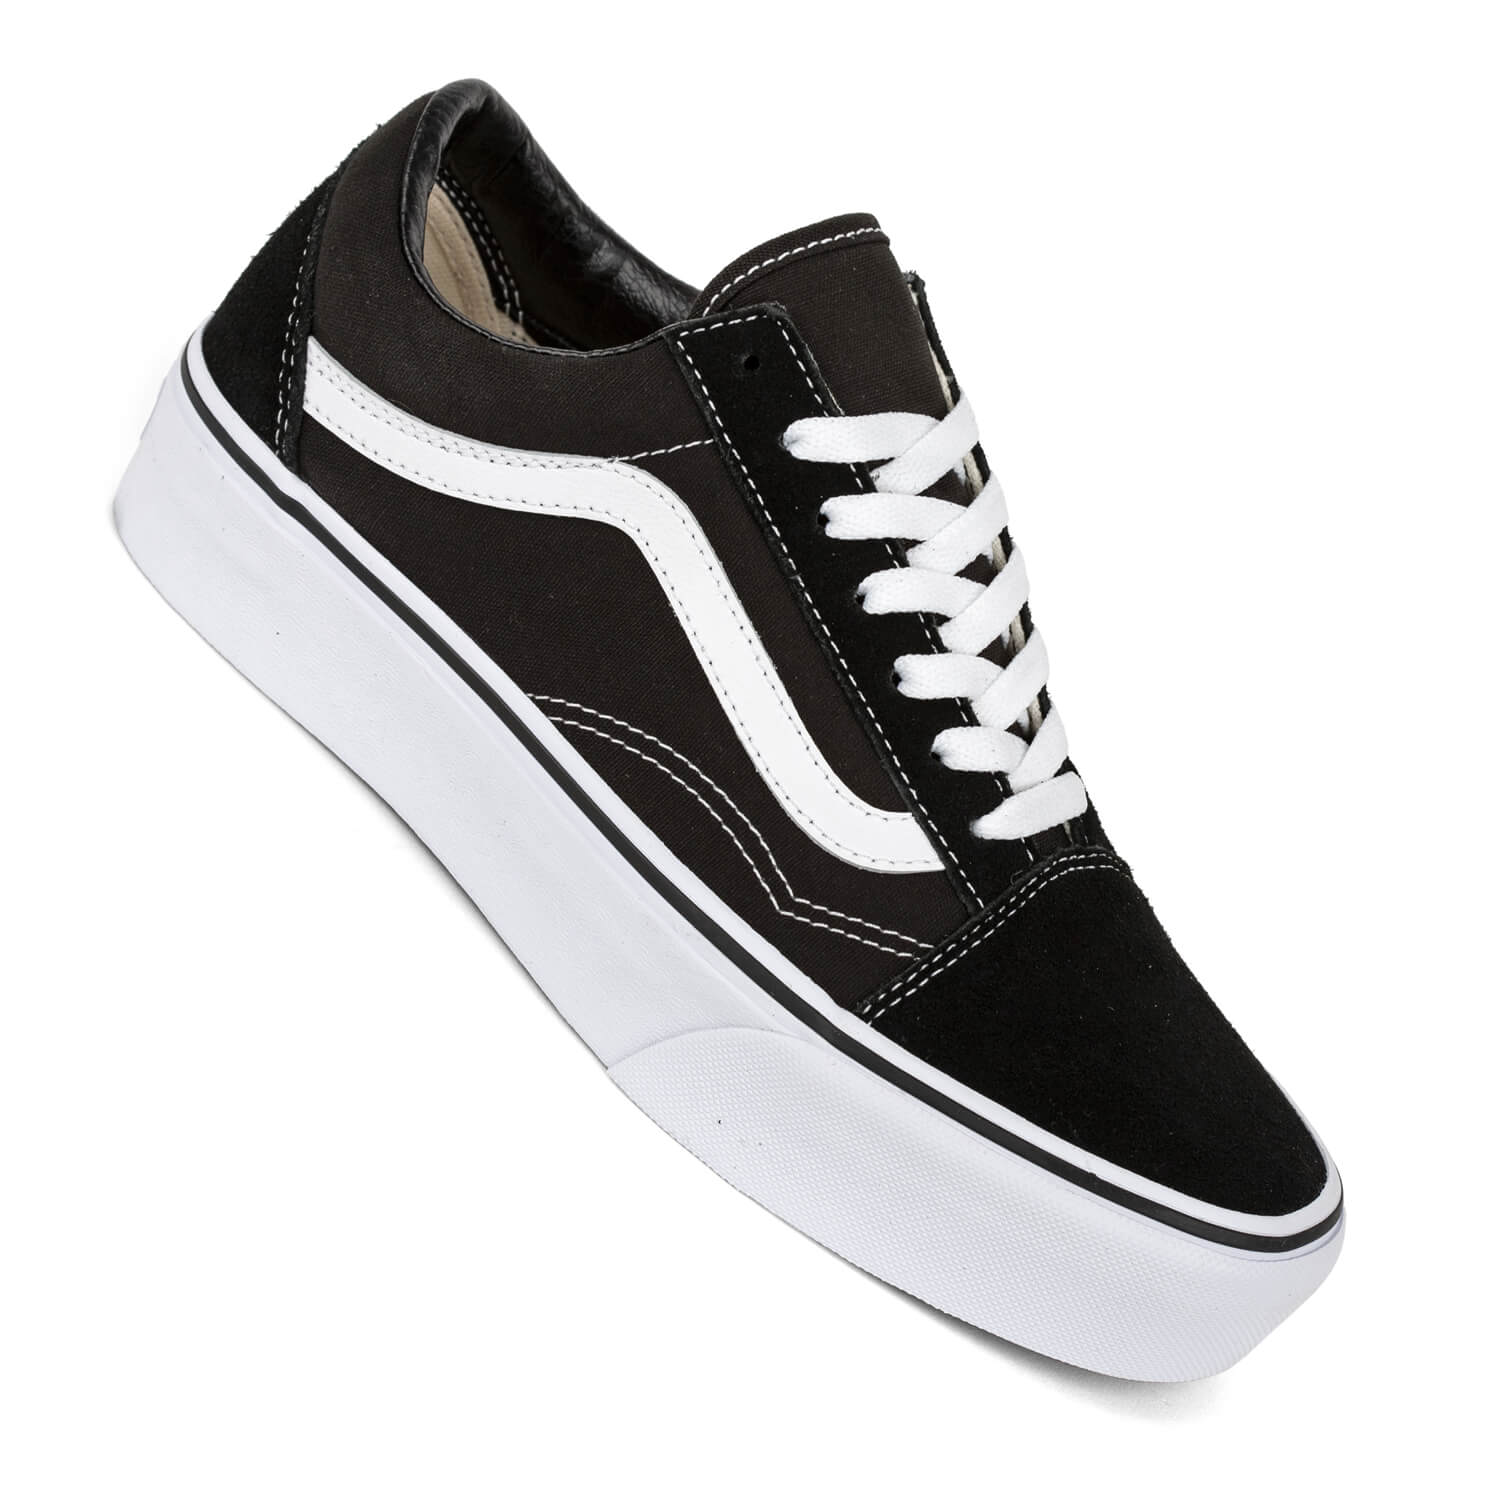 VANS Damen Sneaker 722733 (SchwarzWeiß)